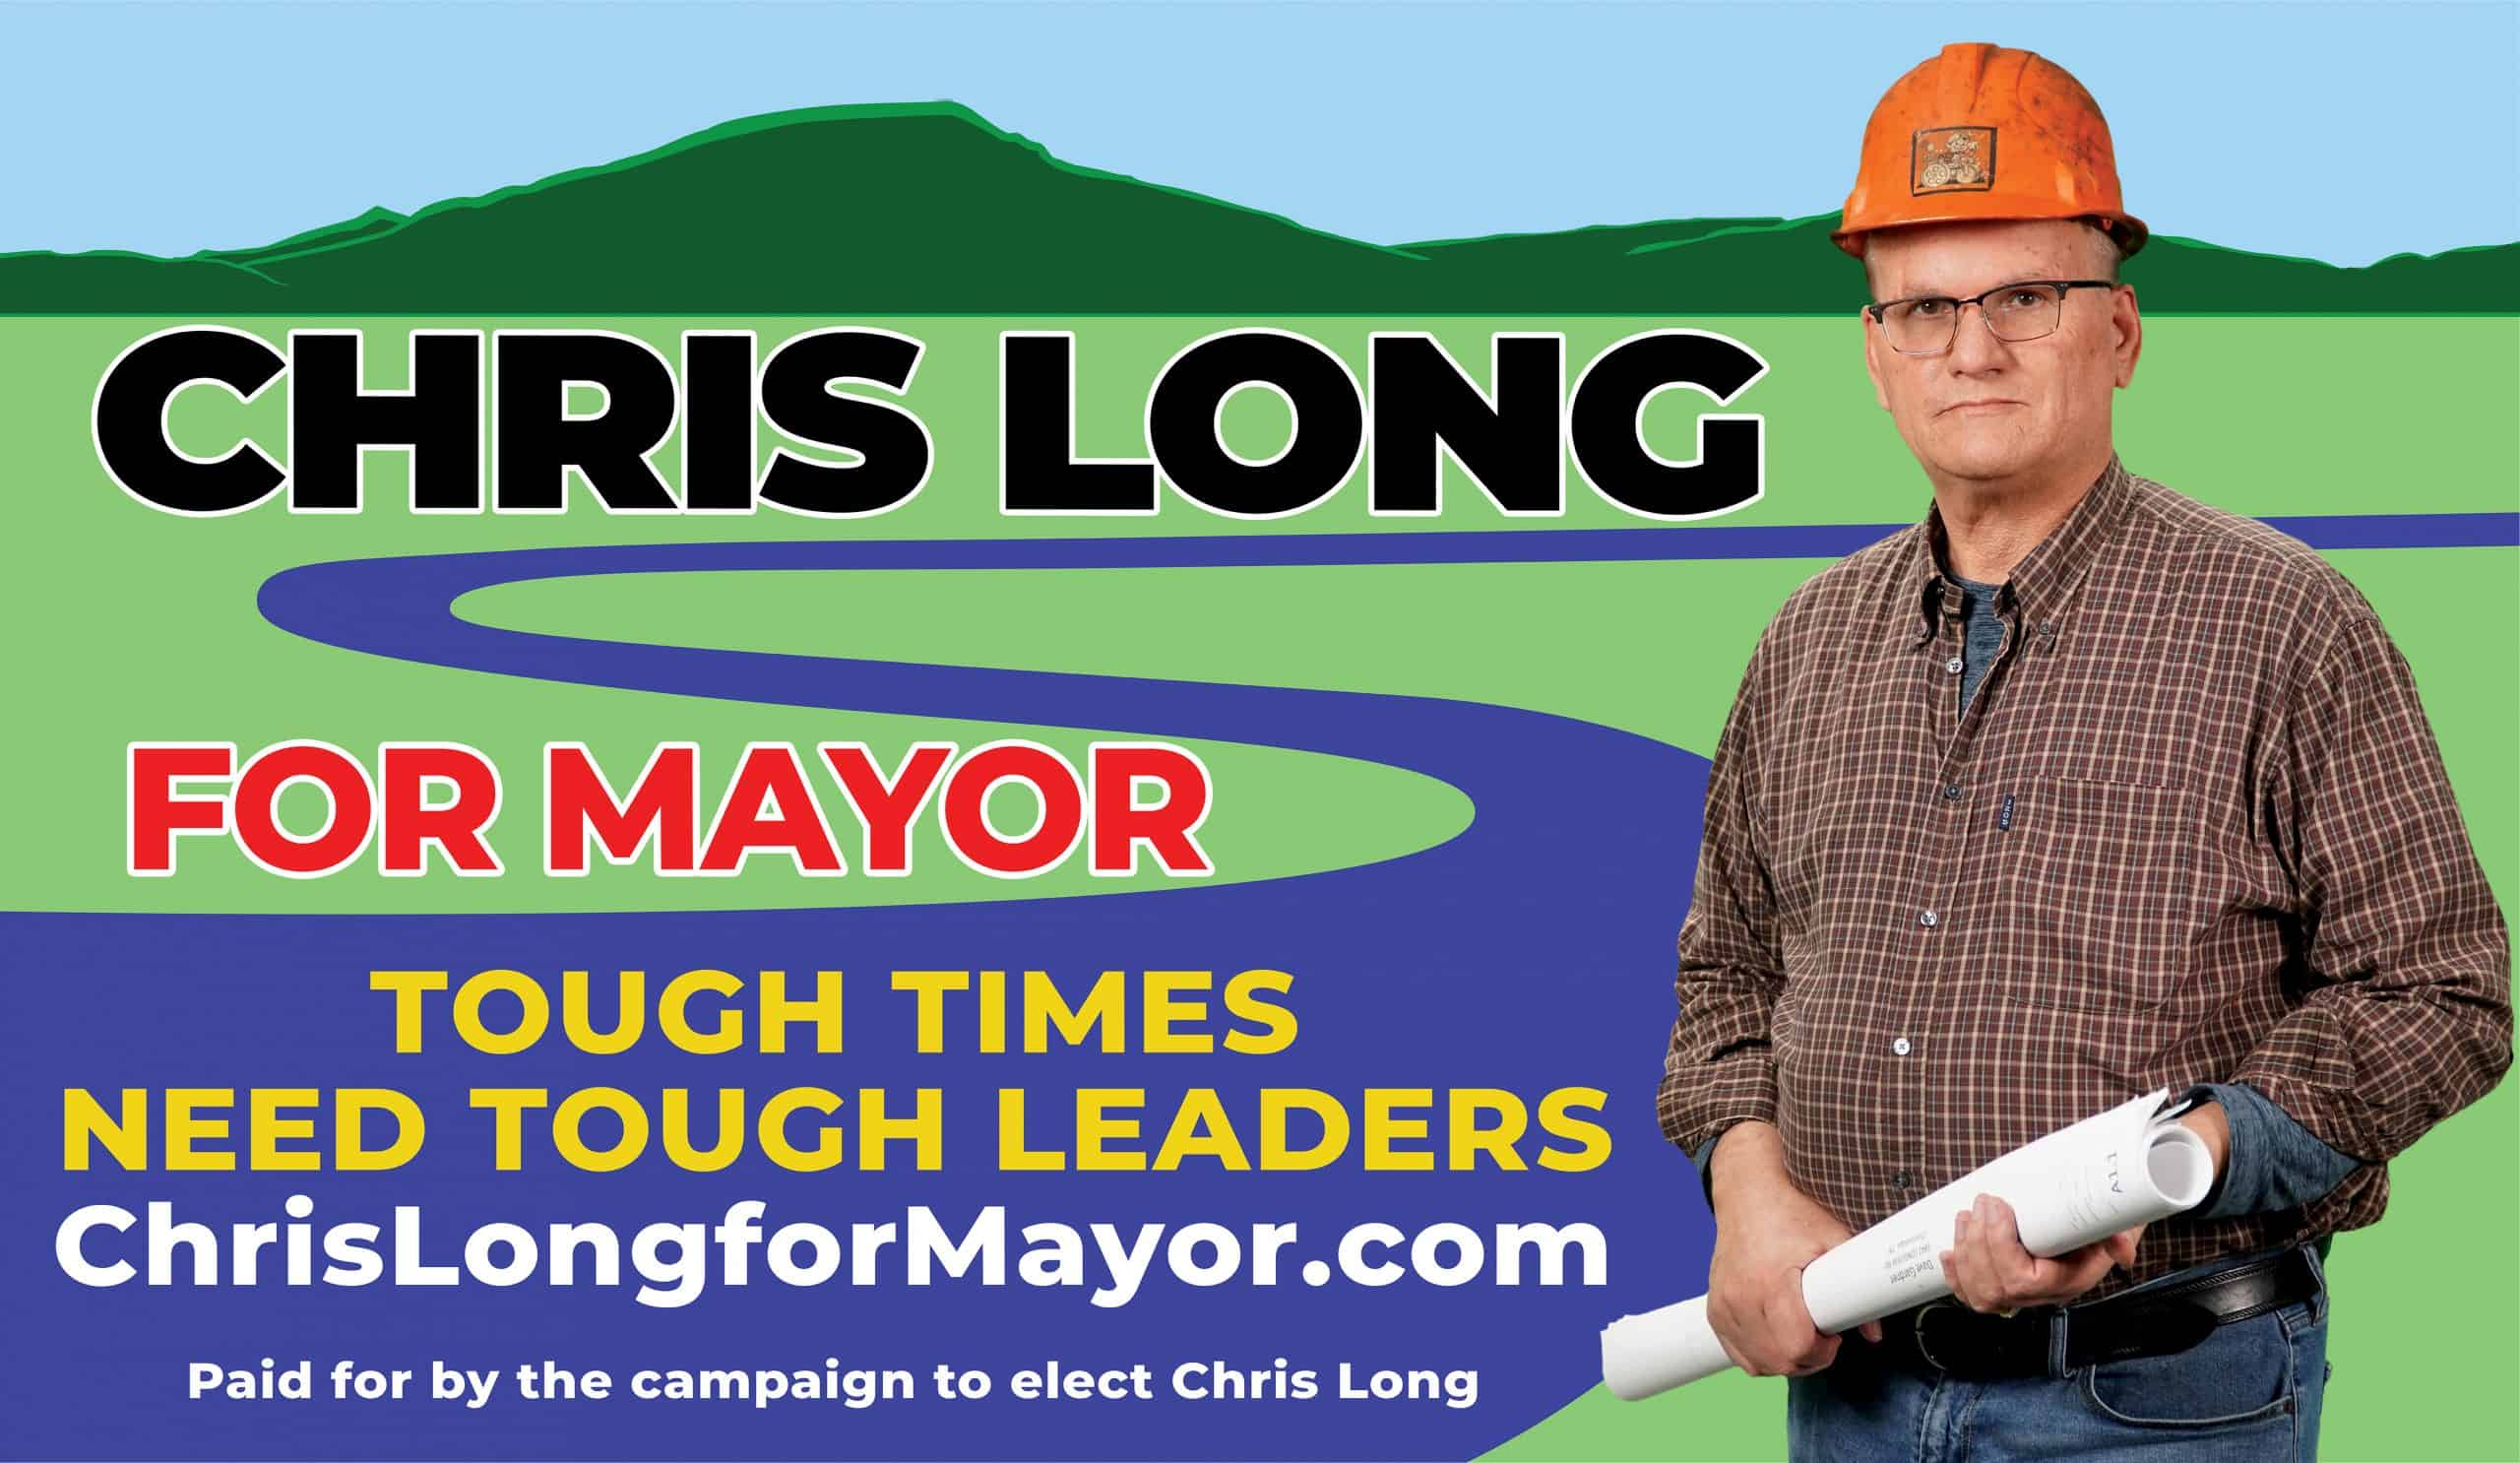 Chris Long FINAL Campaign Sign 62by36 RGB 72dpi 12-16-2020 copy